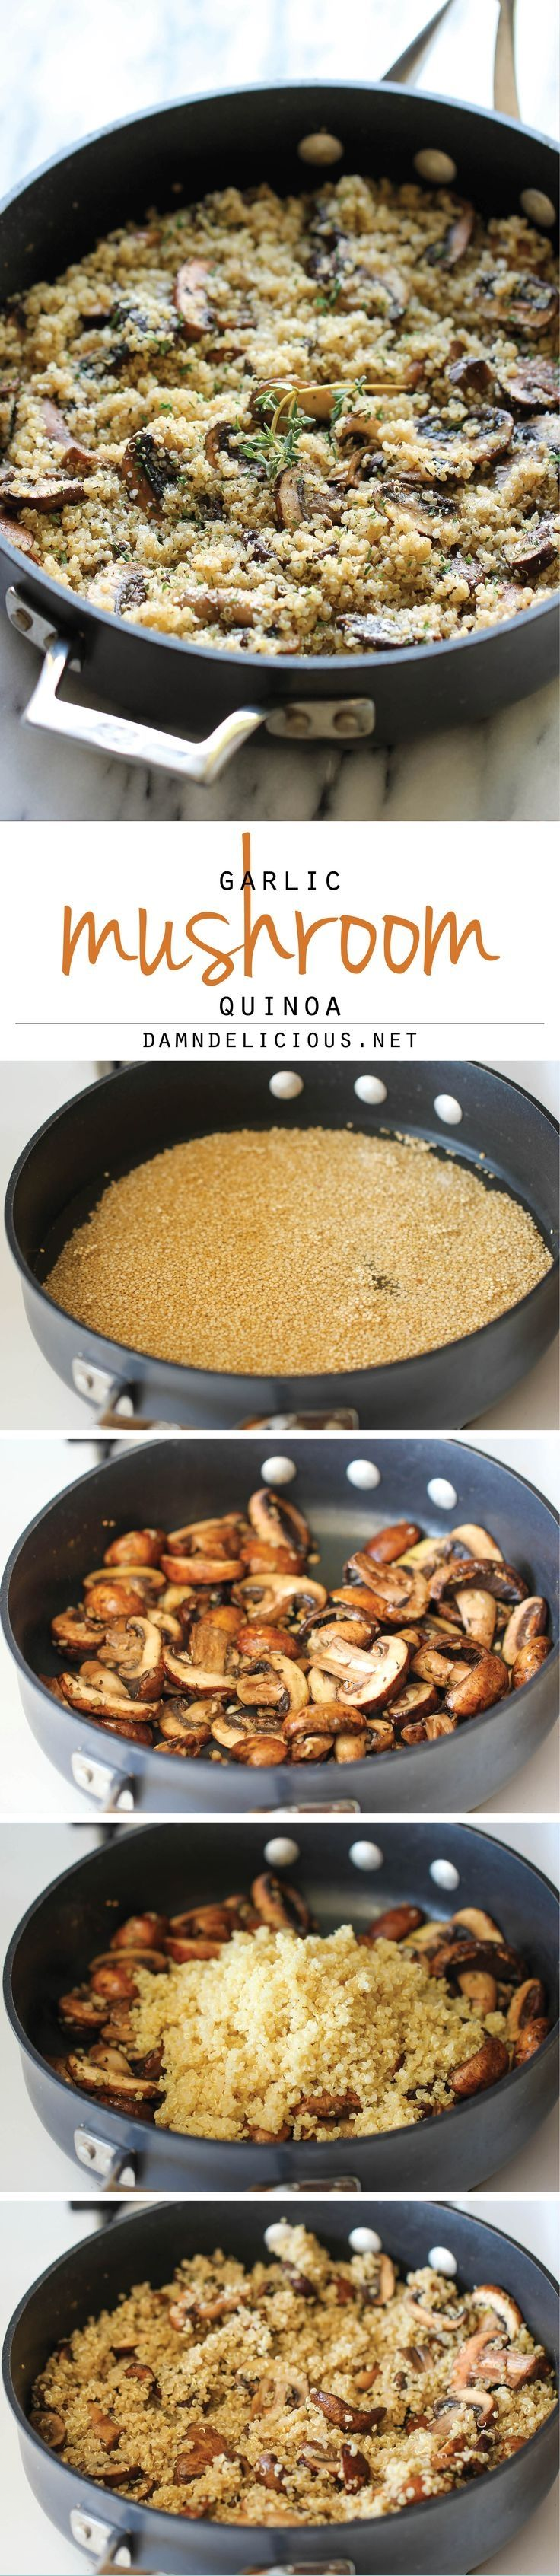 Garlic Mushroom Quinoa - #Garlic #mushroom #Quinoa ***Sub nutritional yeast for cheese.***